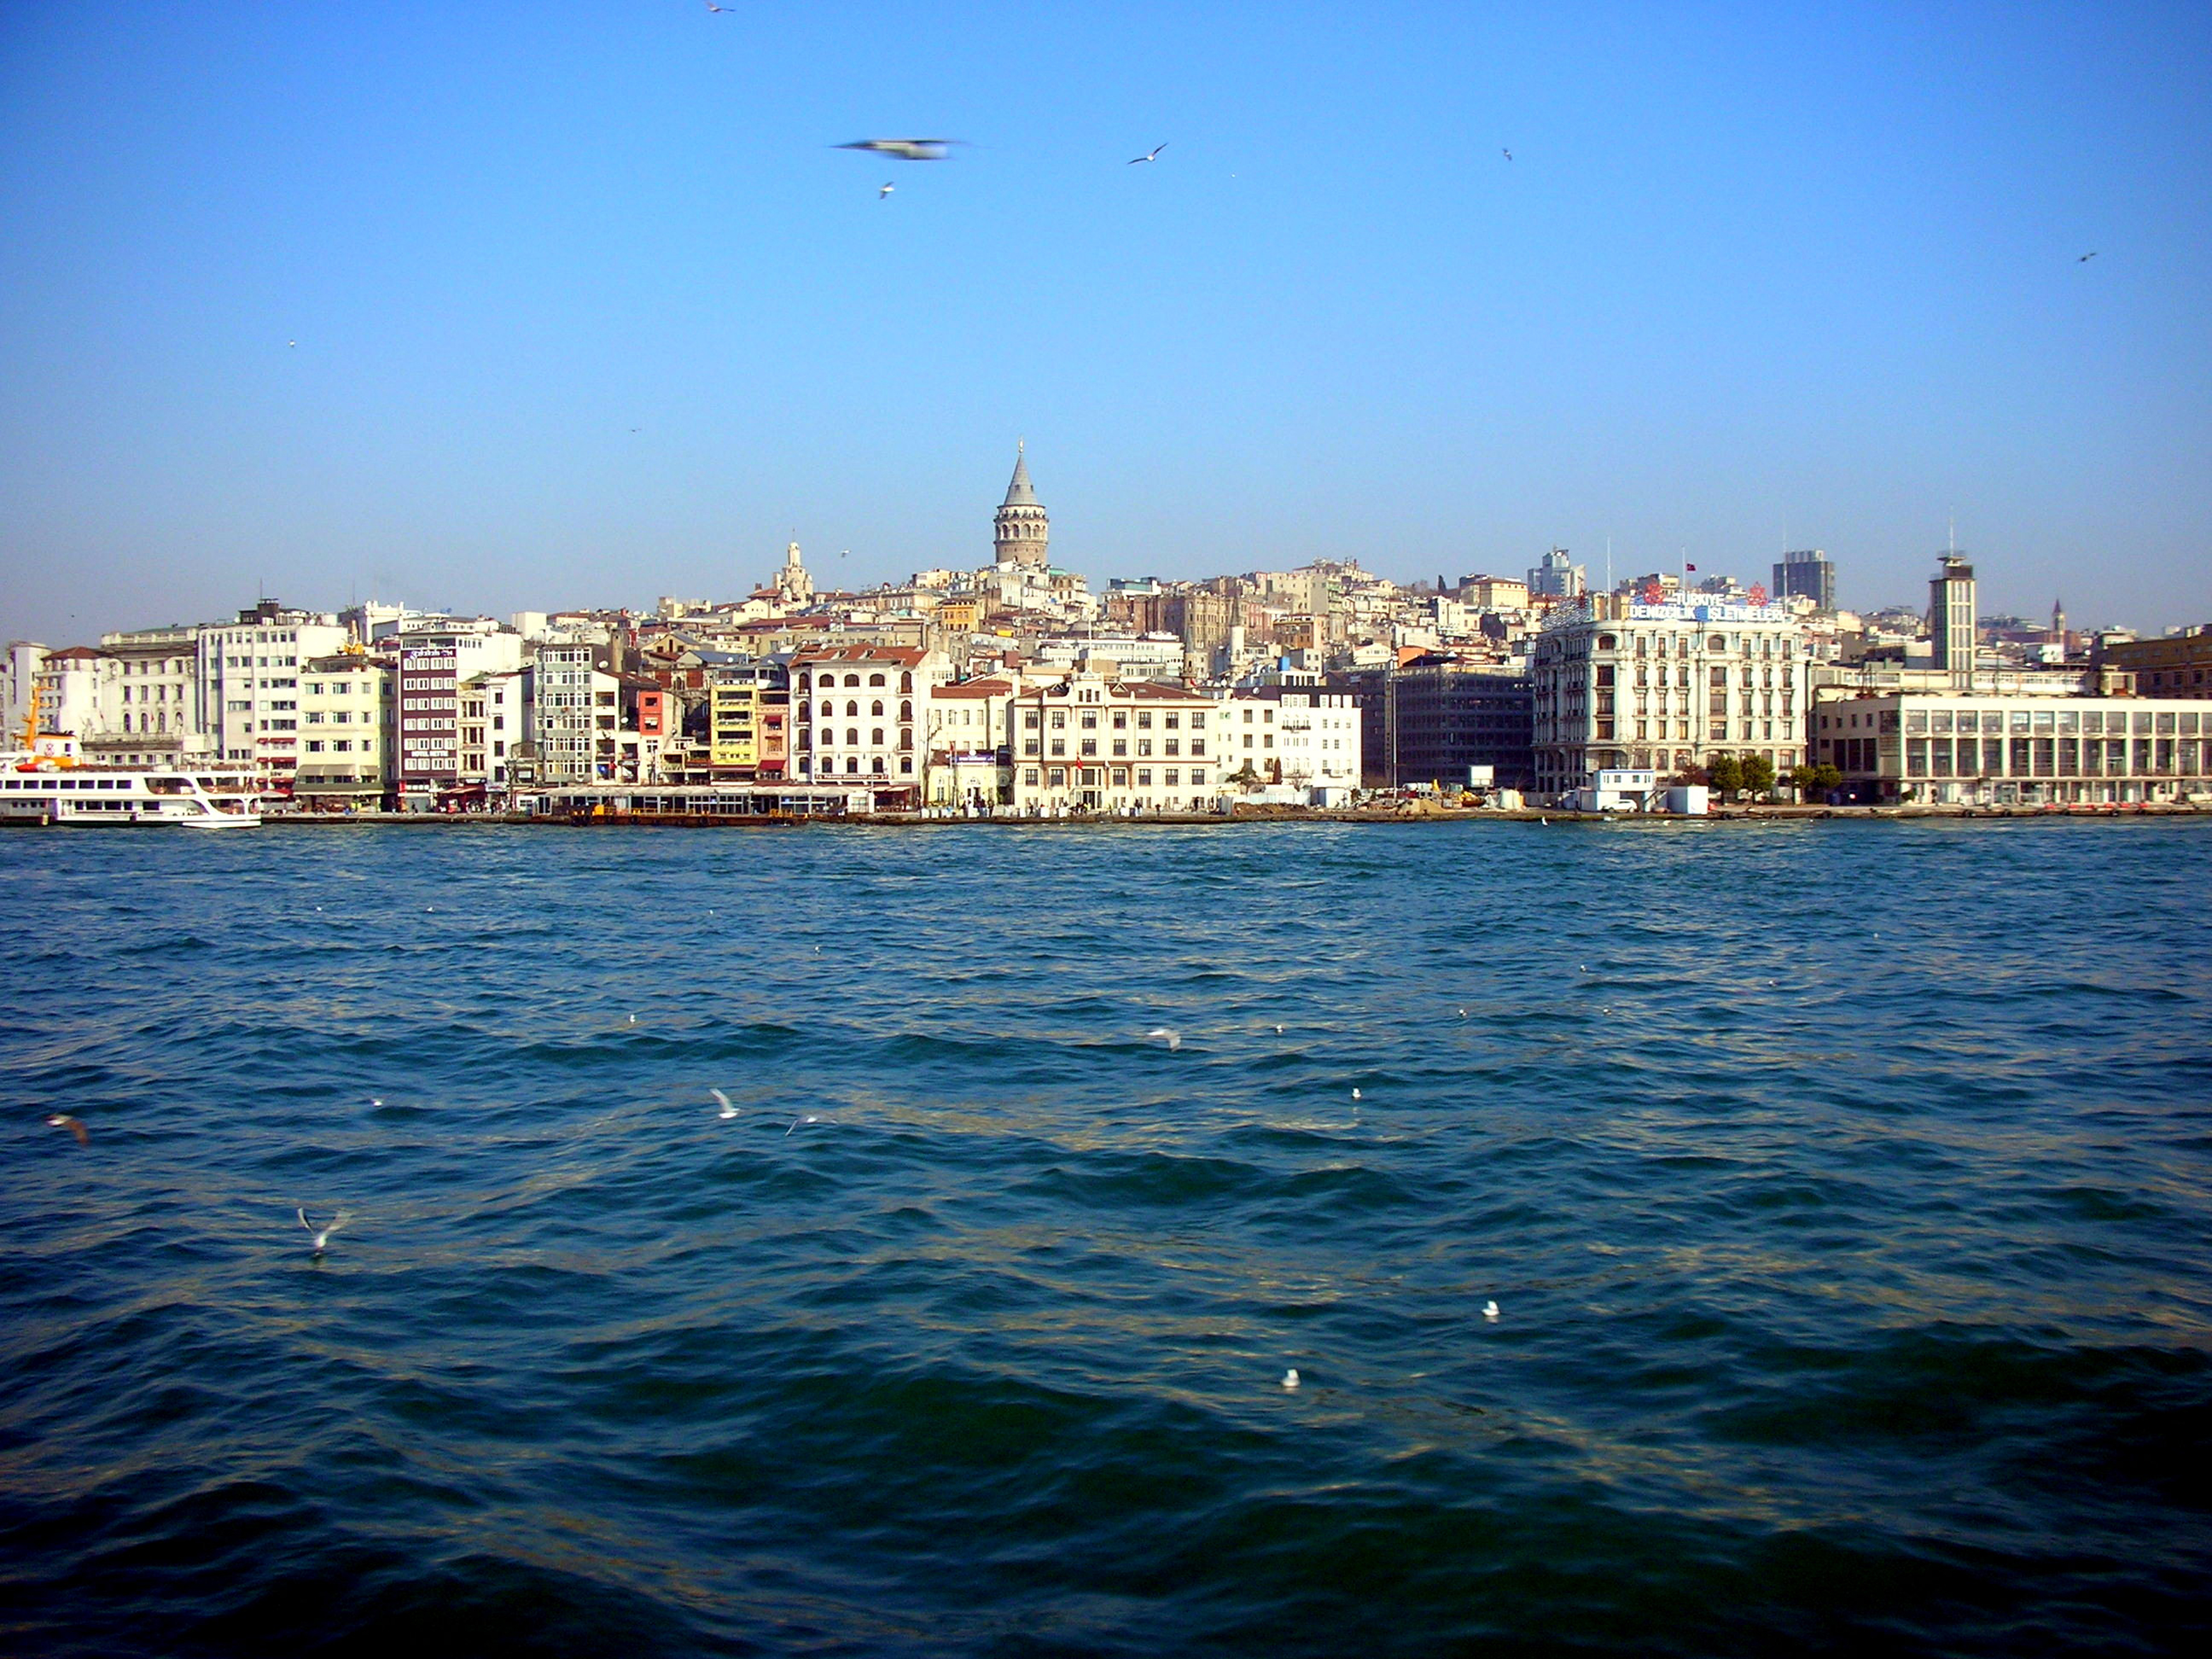 Overview of Karakoy from the ferry, Istanbul, Turkey